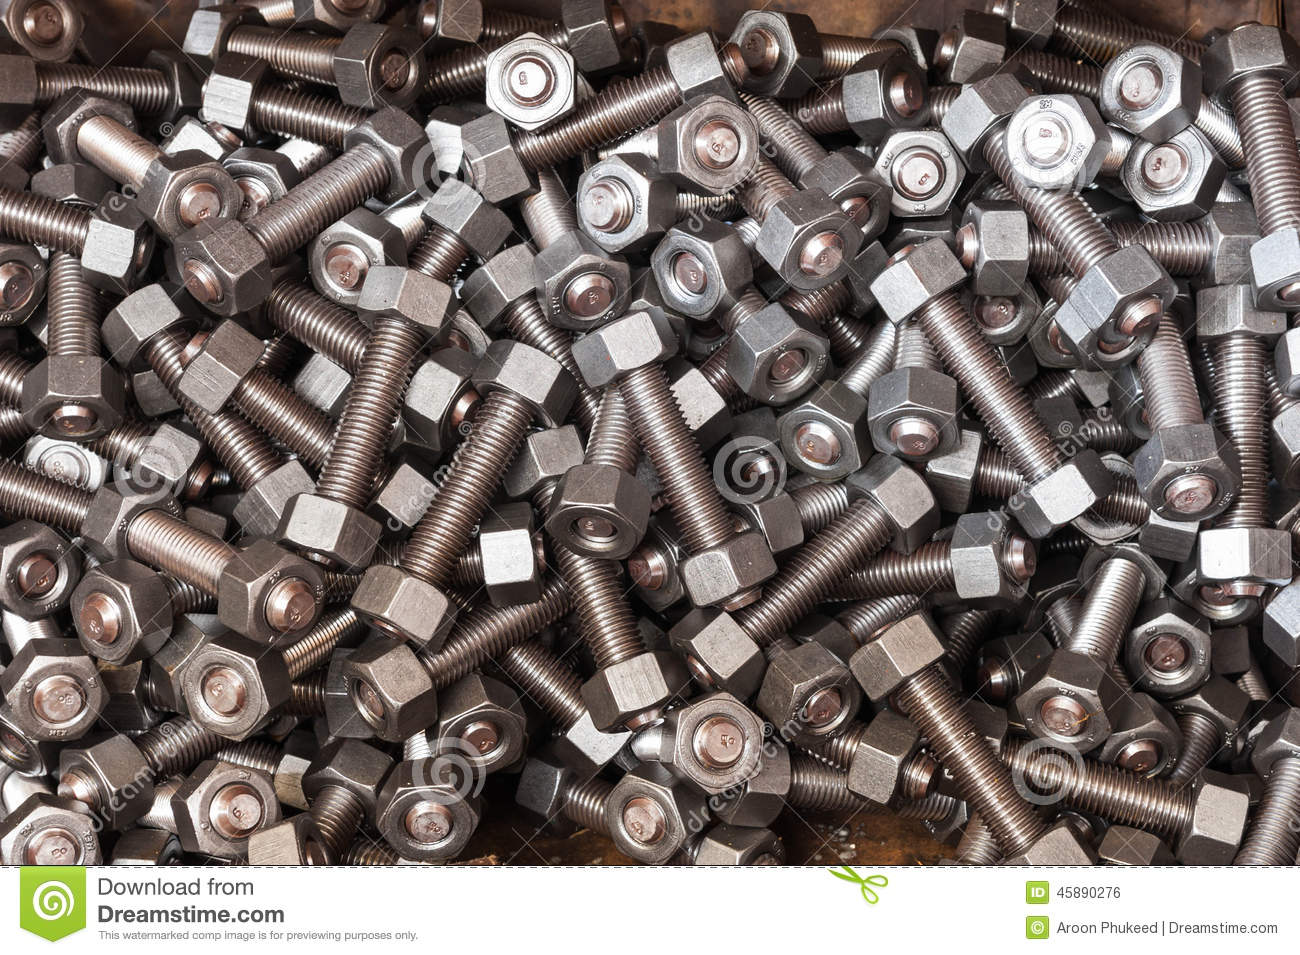 Nuts and bolts in case box stock photo  Image of instrument - 45890276